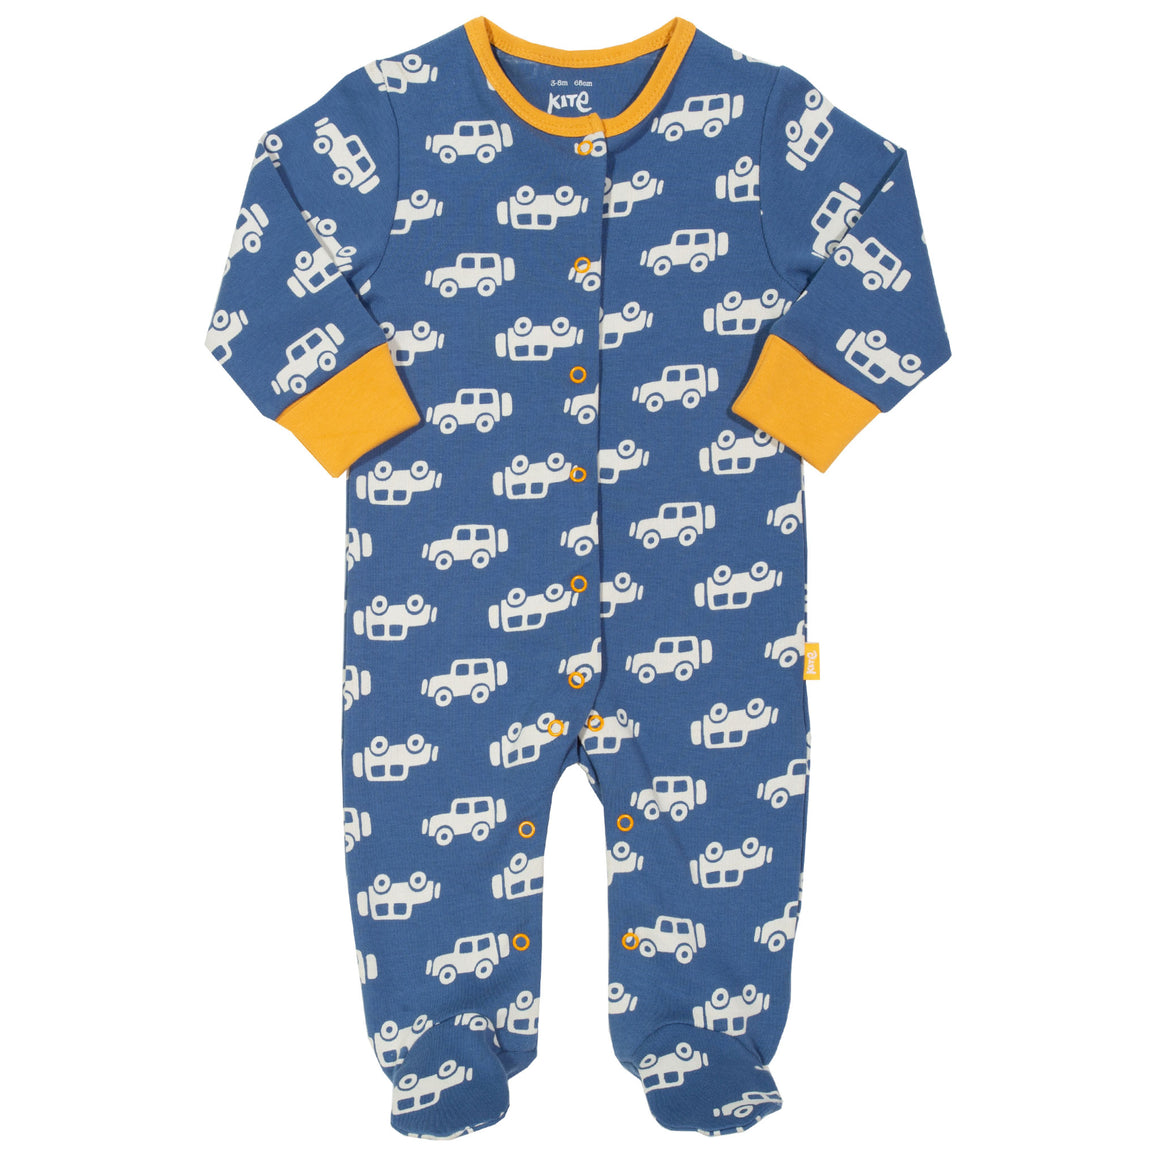 New Kite off-road sleepsuit size 12-18 months